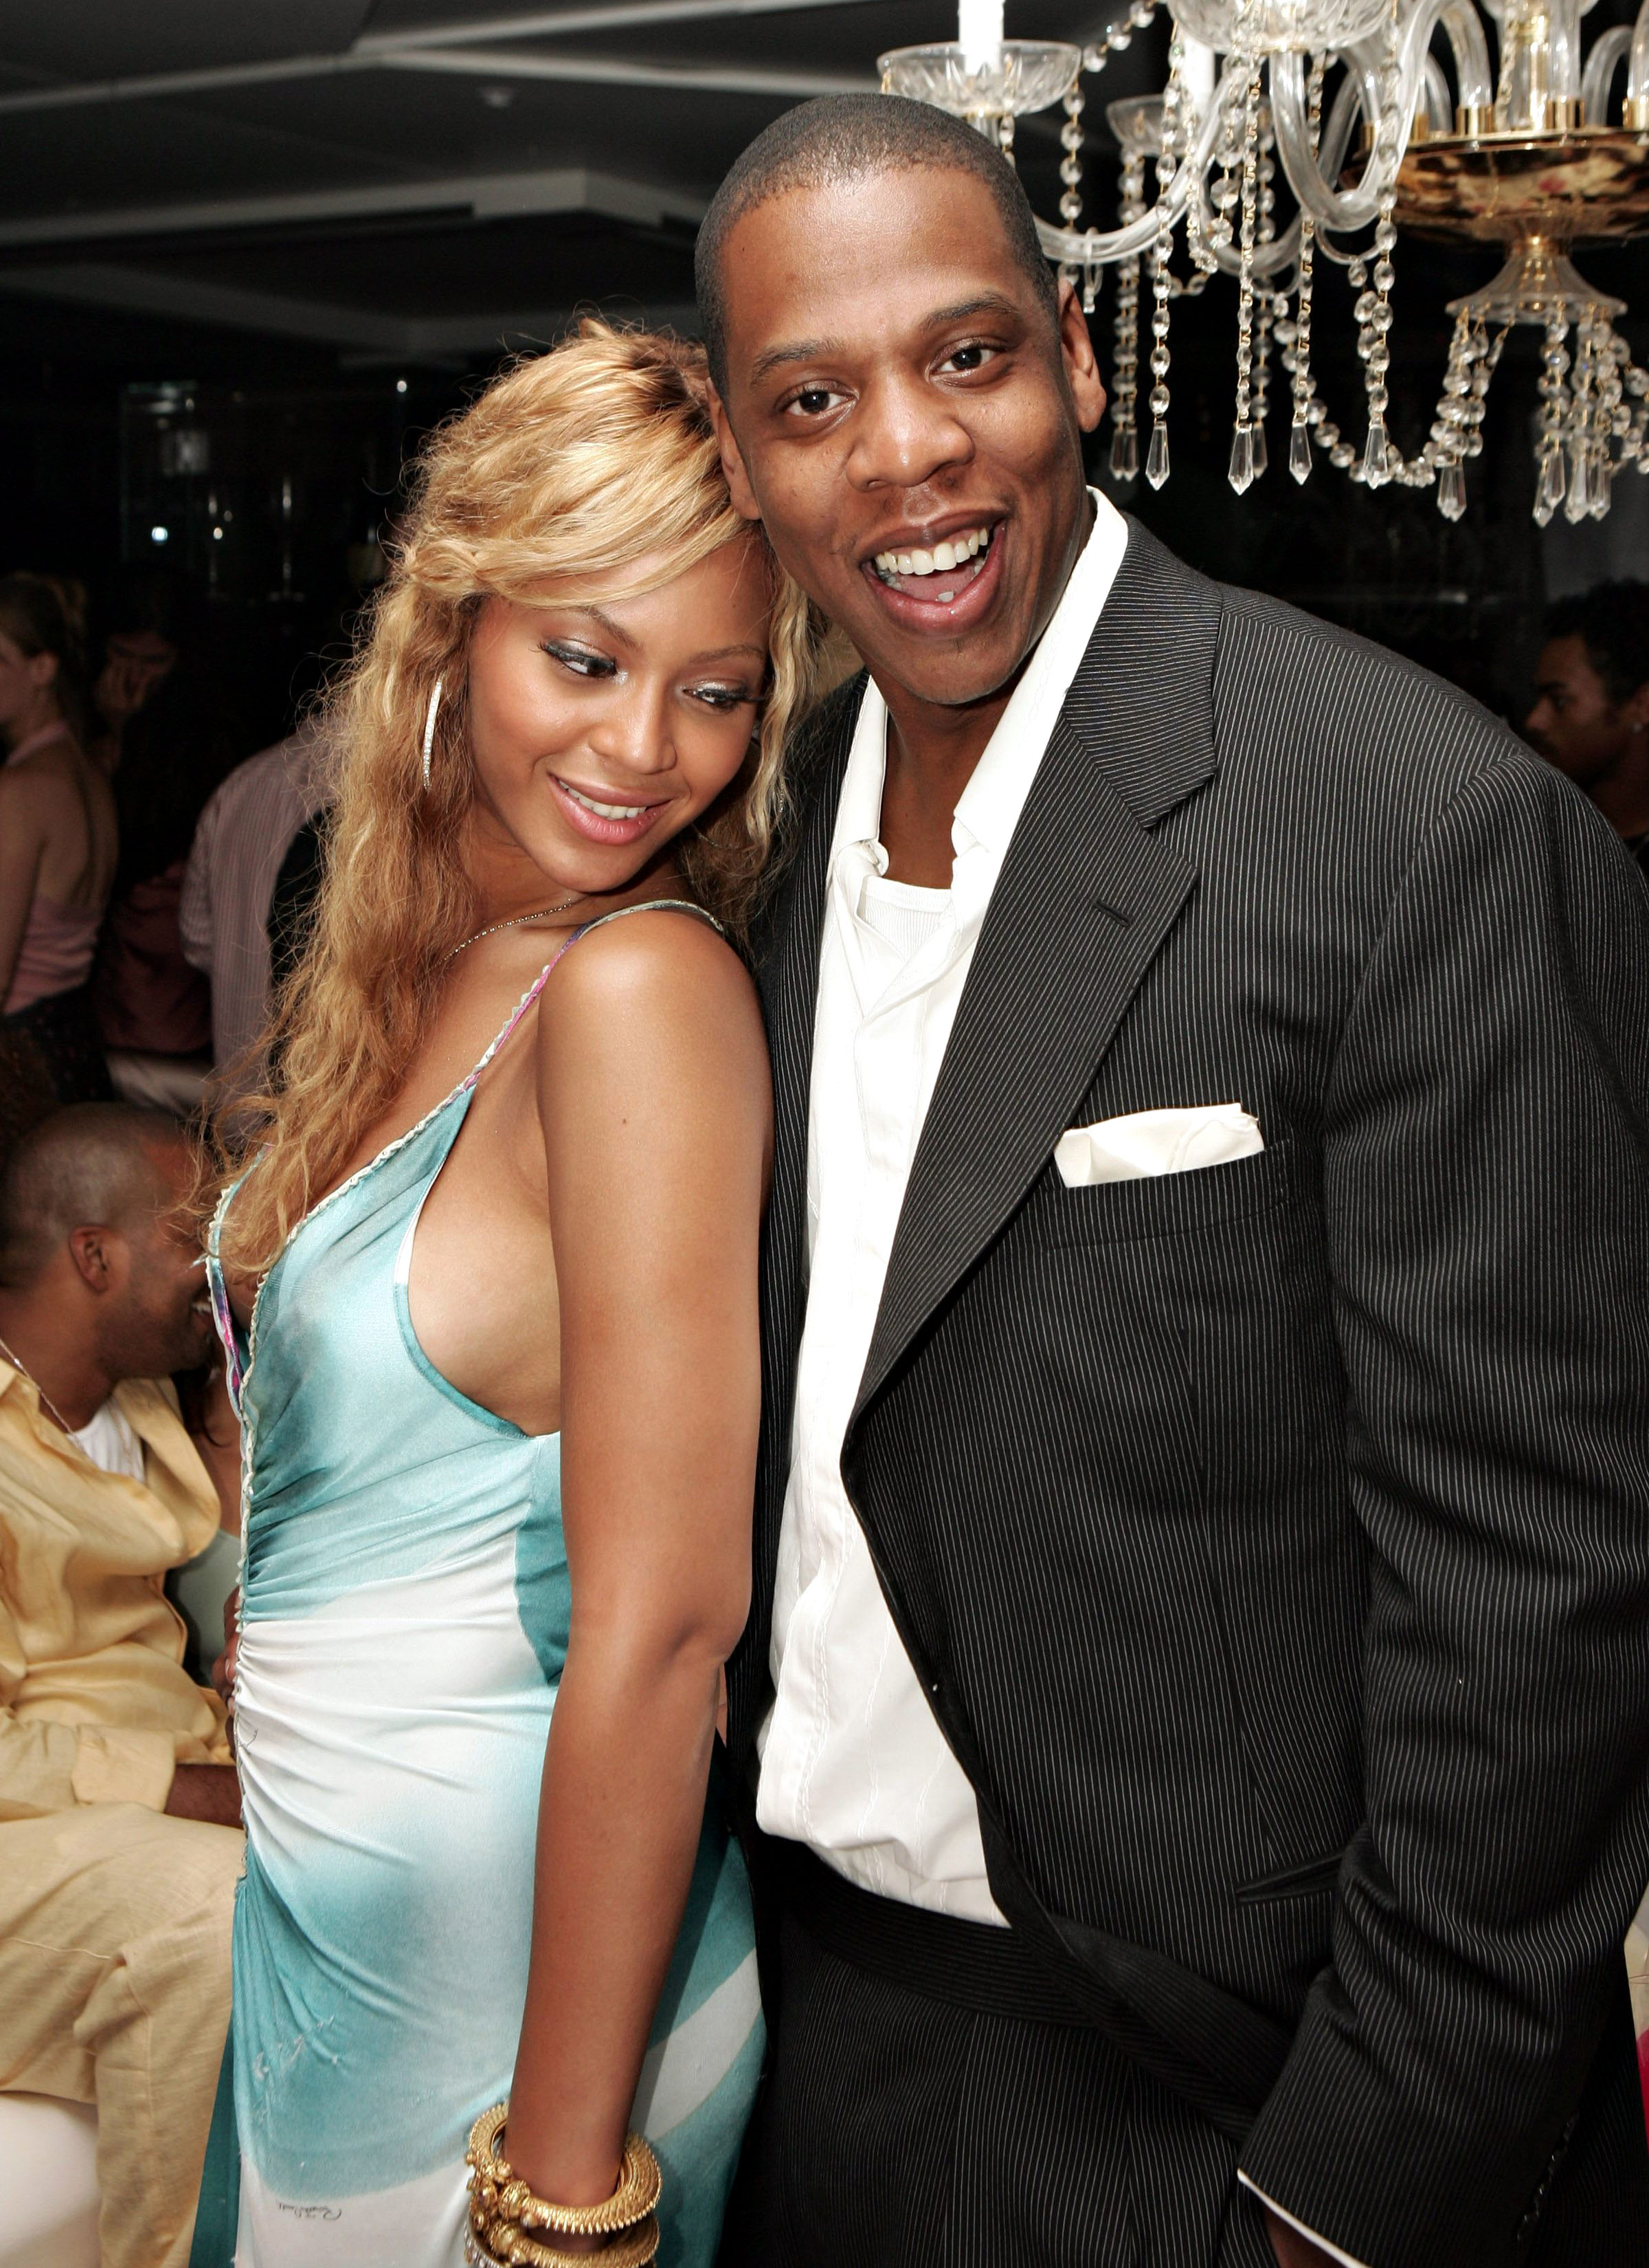 http://celebnmusic247.com/wp-content/uploads/2013/03/310-Jay-Z-Beyonce-and-More-Celebs-Financials-Exposed-1.jpg